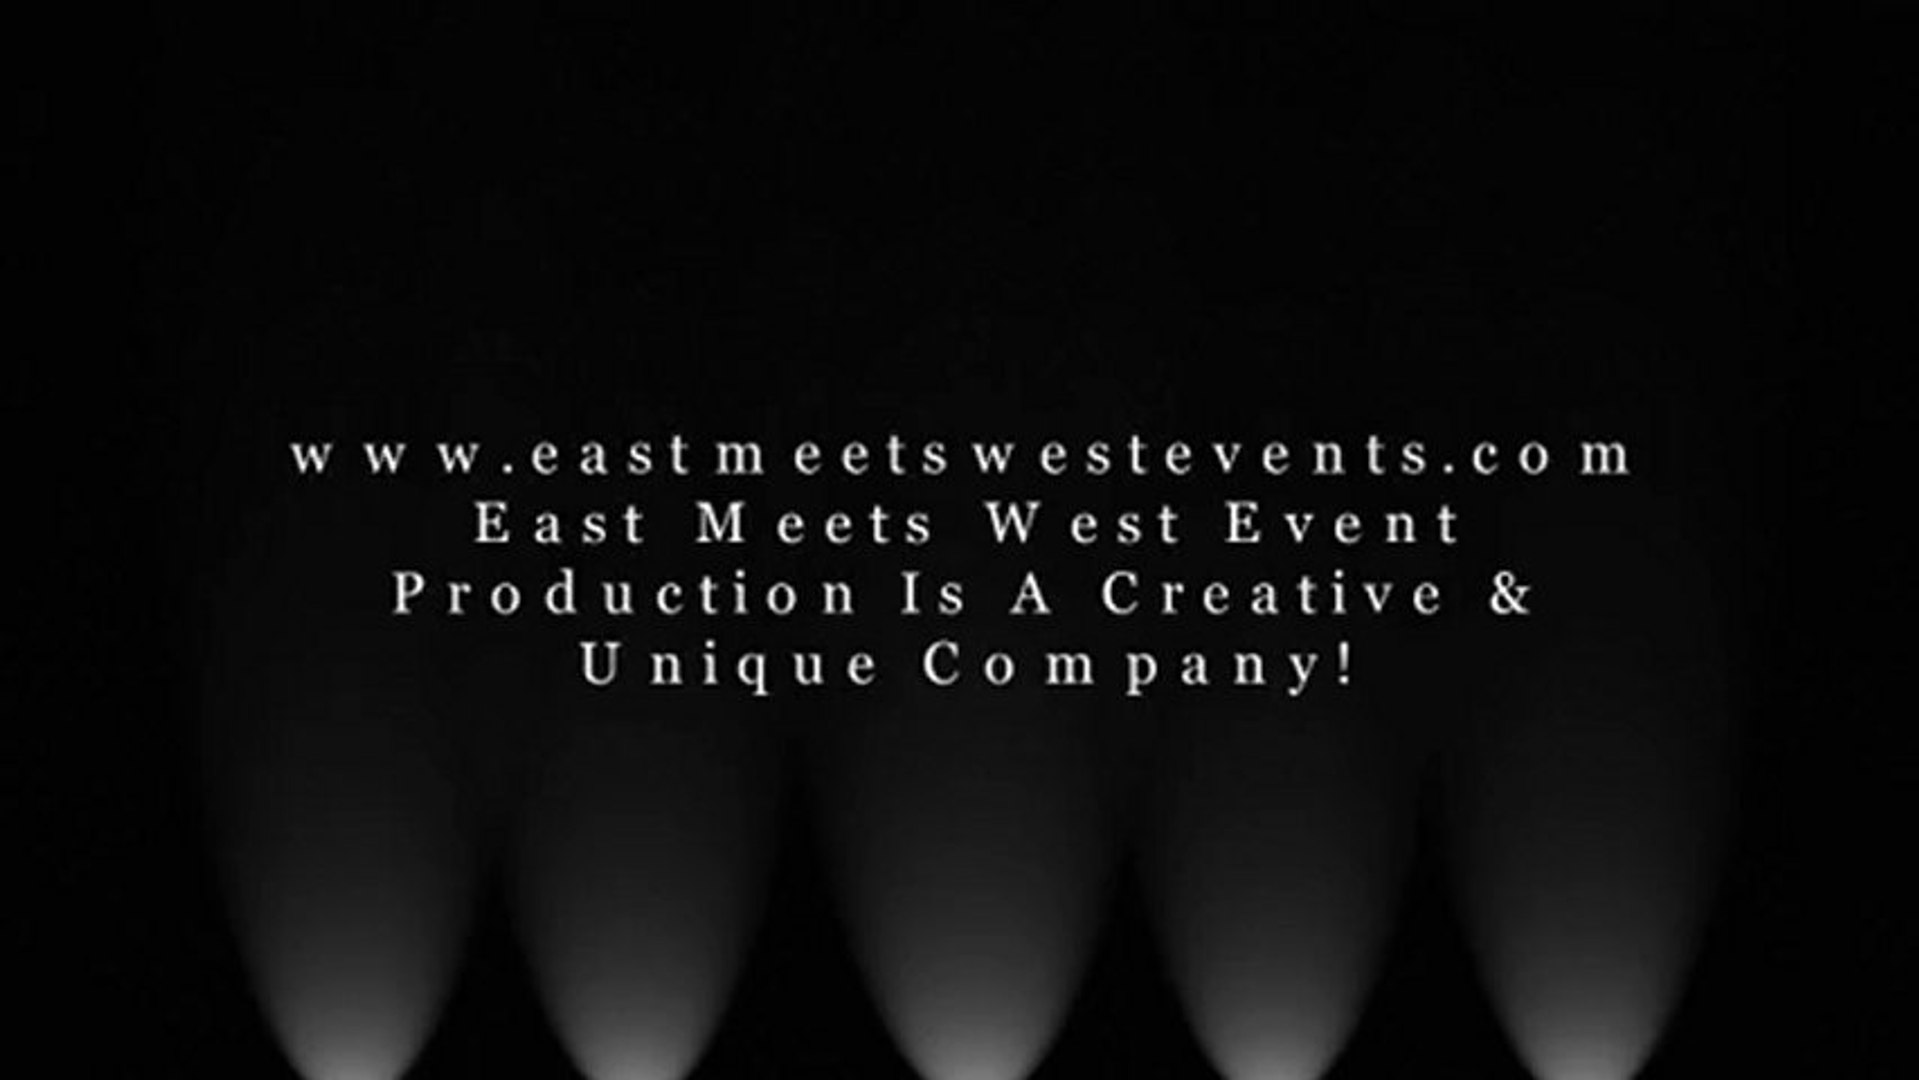 East Meets West Event Production Company. Creative & Unique Events Company.